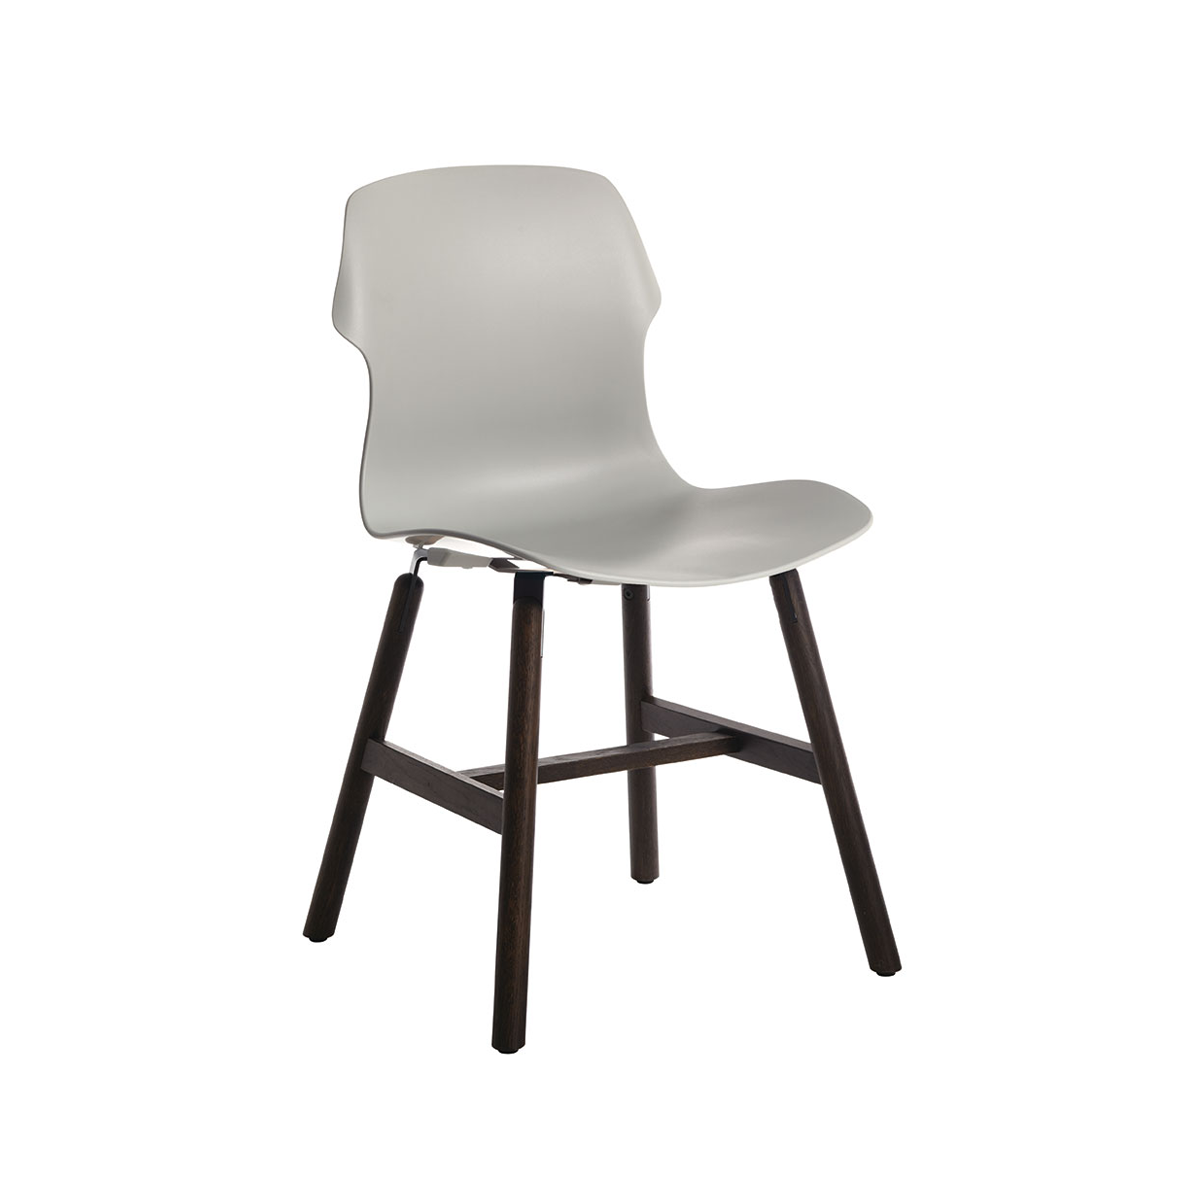 Casamania Stereo Dining Chair Wooden Base 雪倫系列 餐椅 實木椅腳款